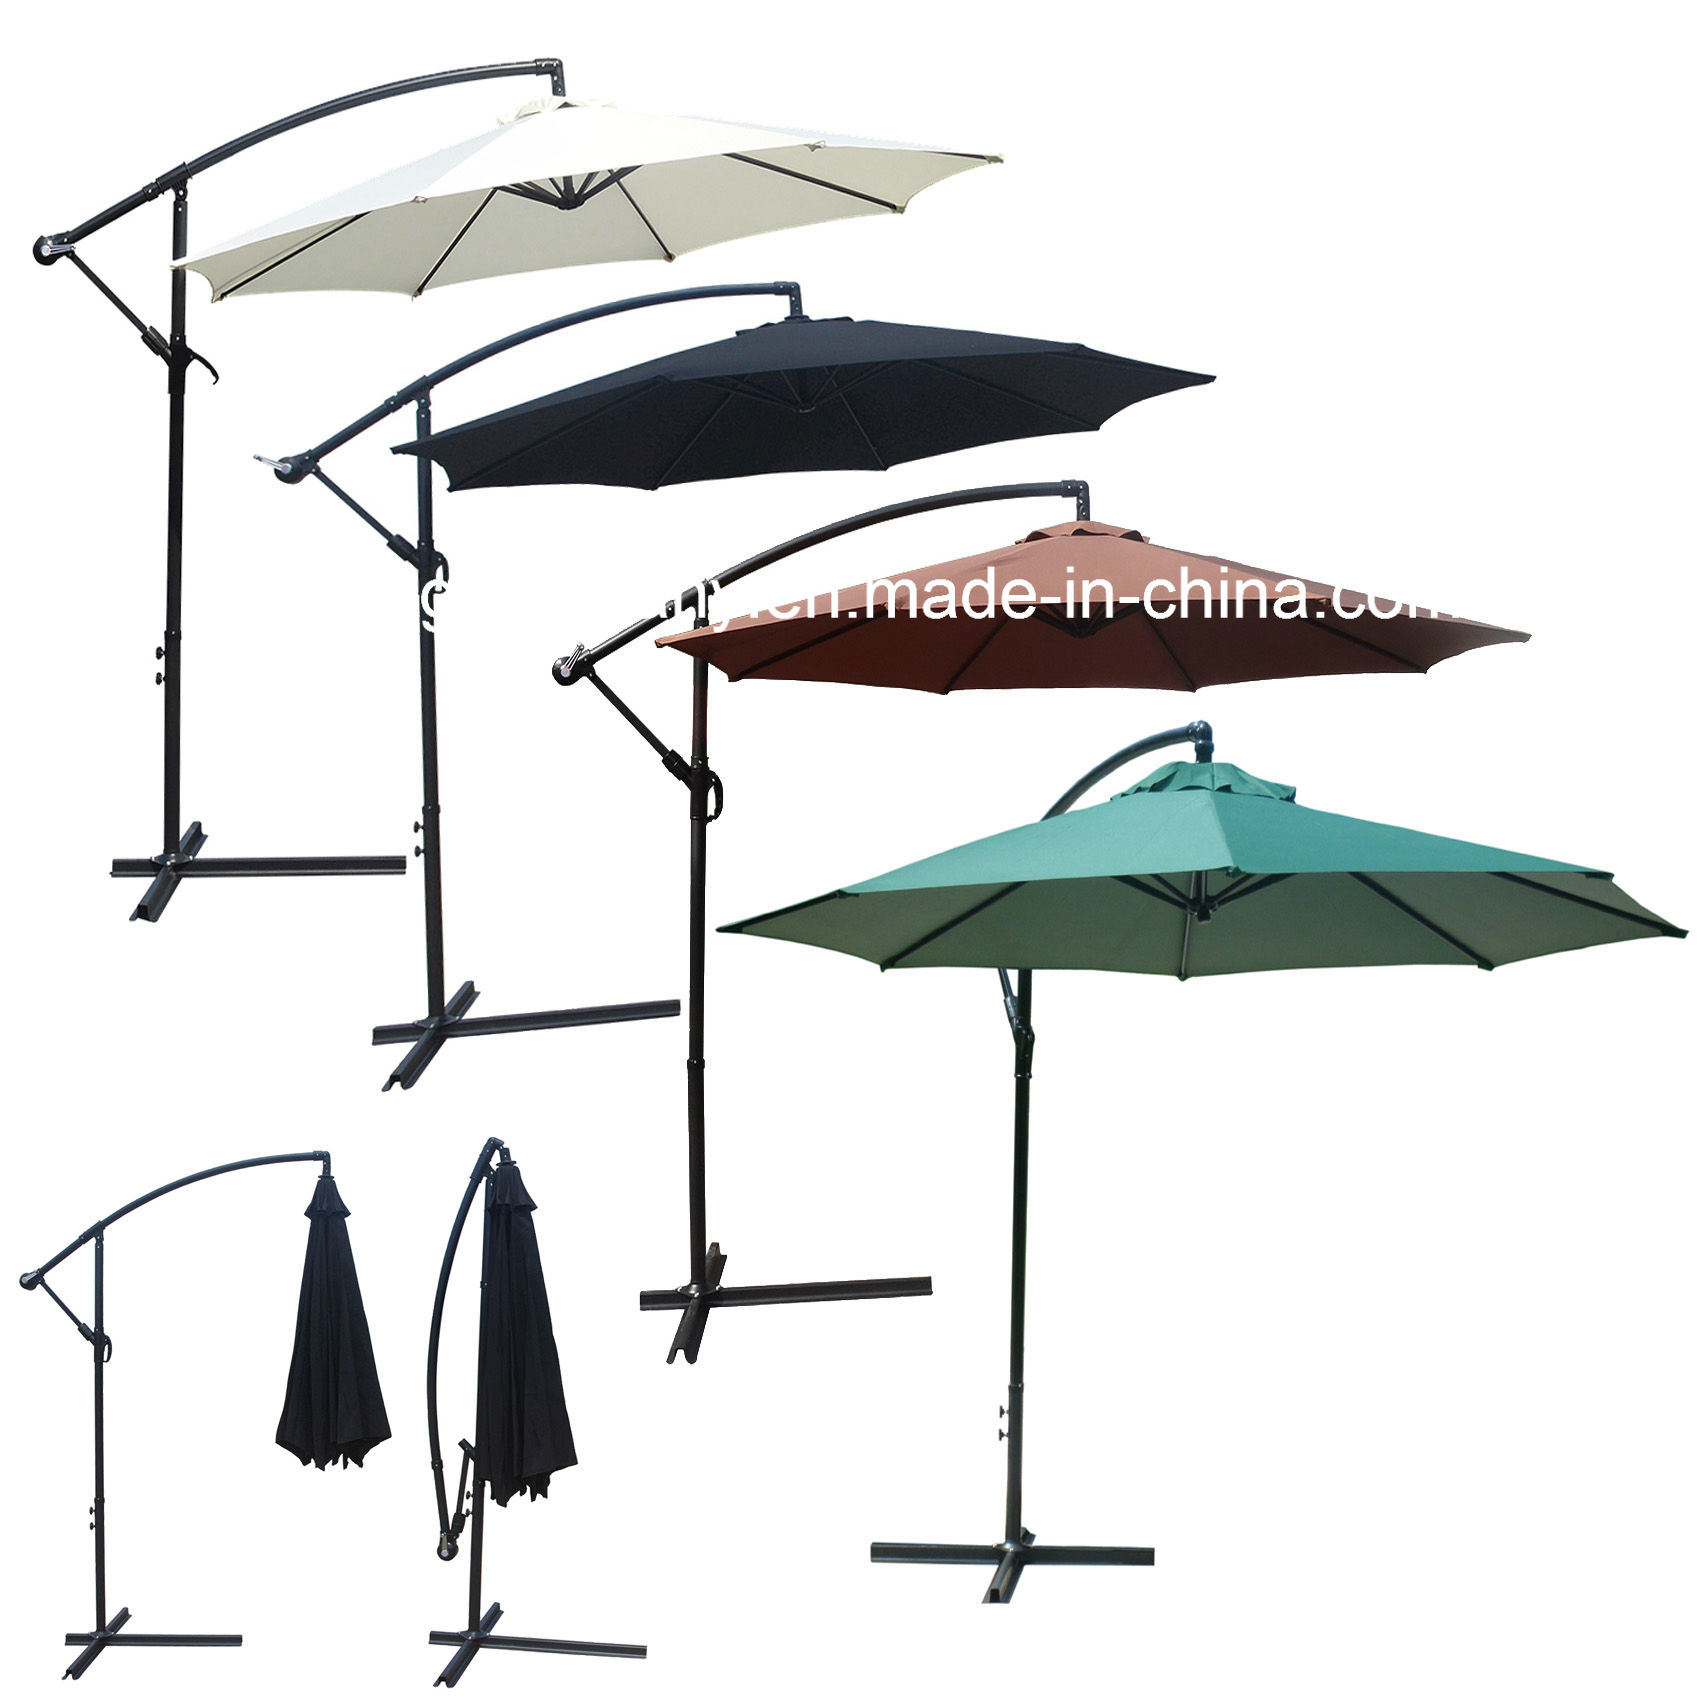 10FT (3M) Outdoor Garden Patio Steel Umbrella Parasol